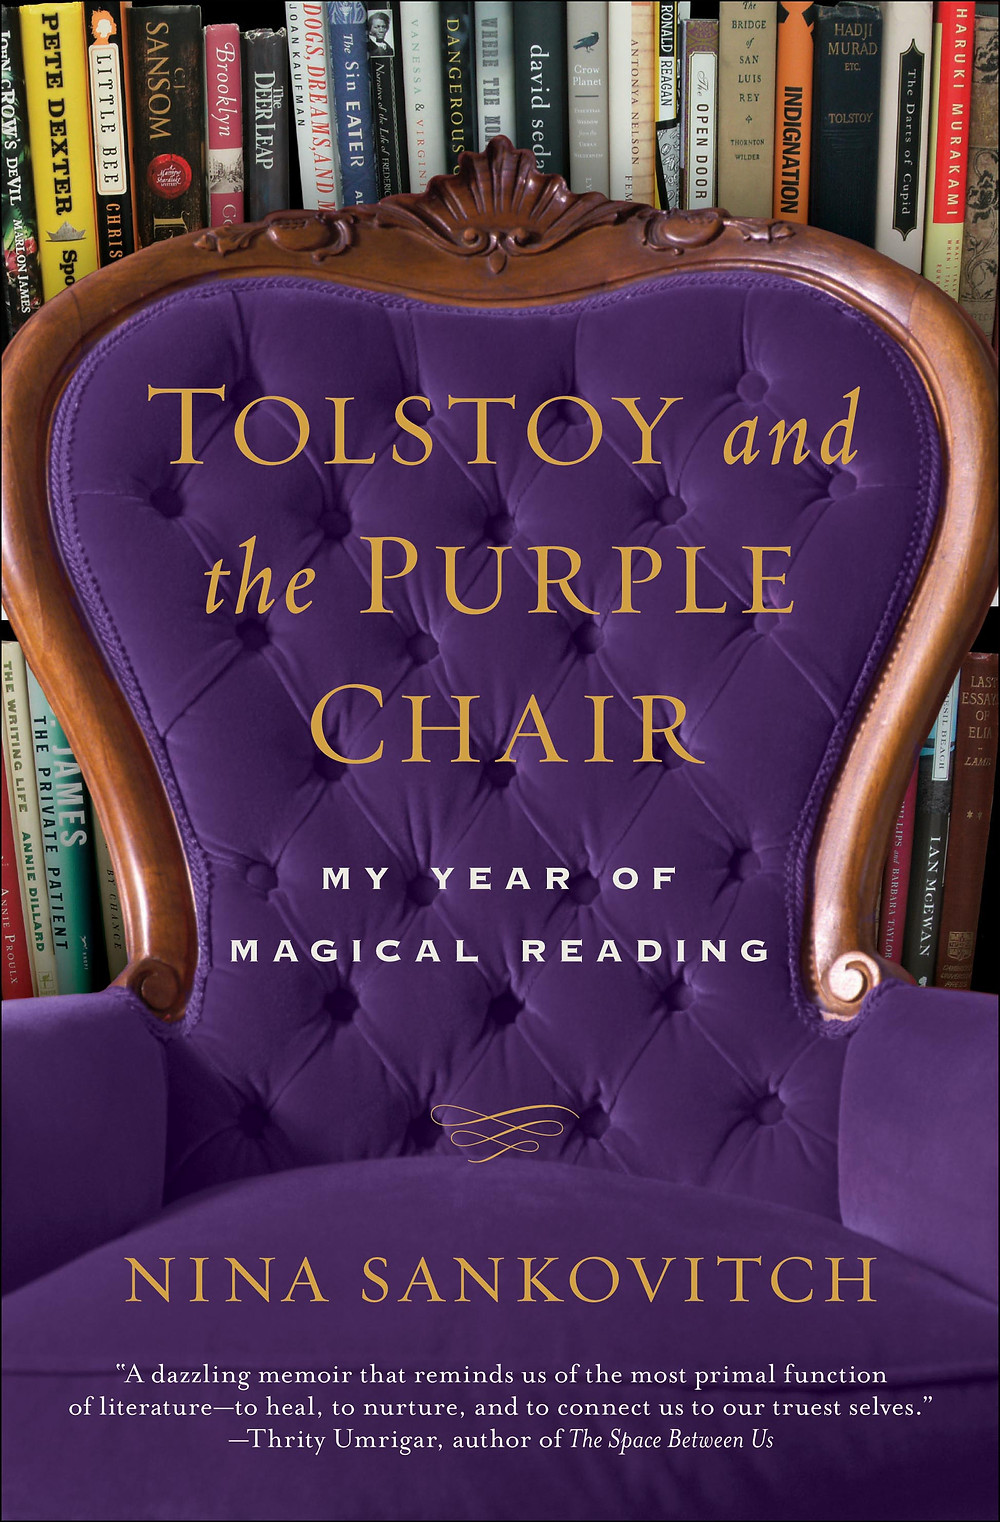 Tolstoy and the Purple Chair by Nina Sankovitch.jpg